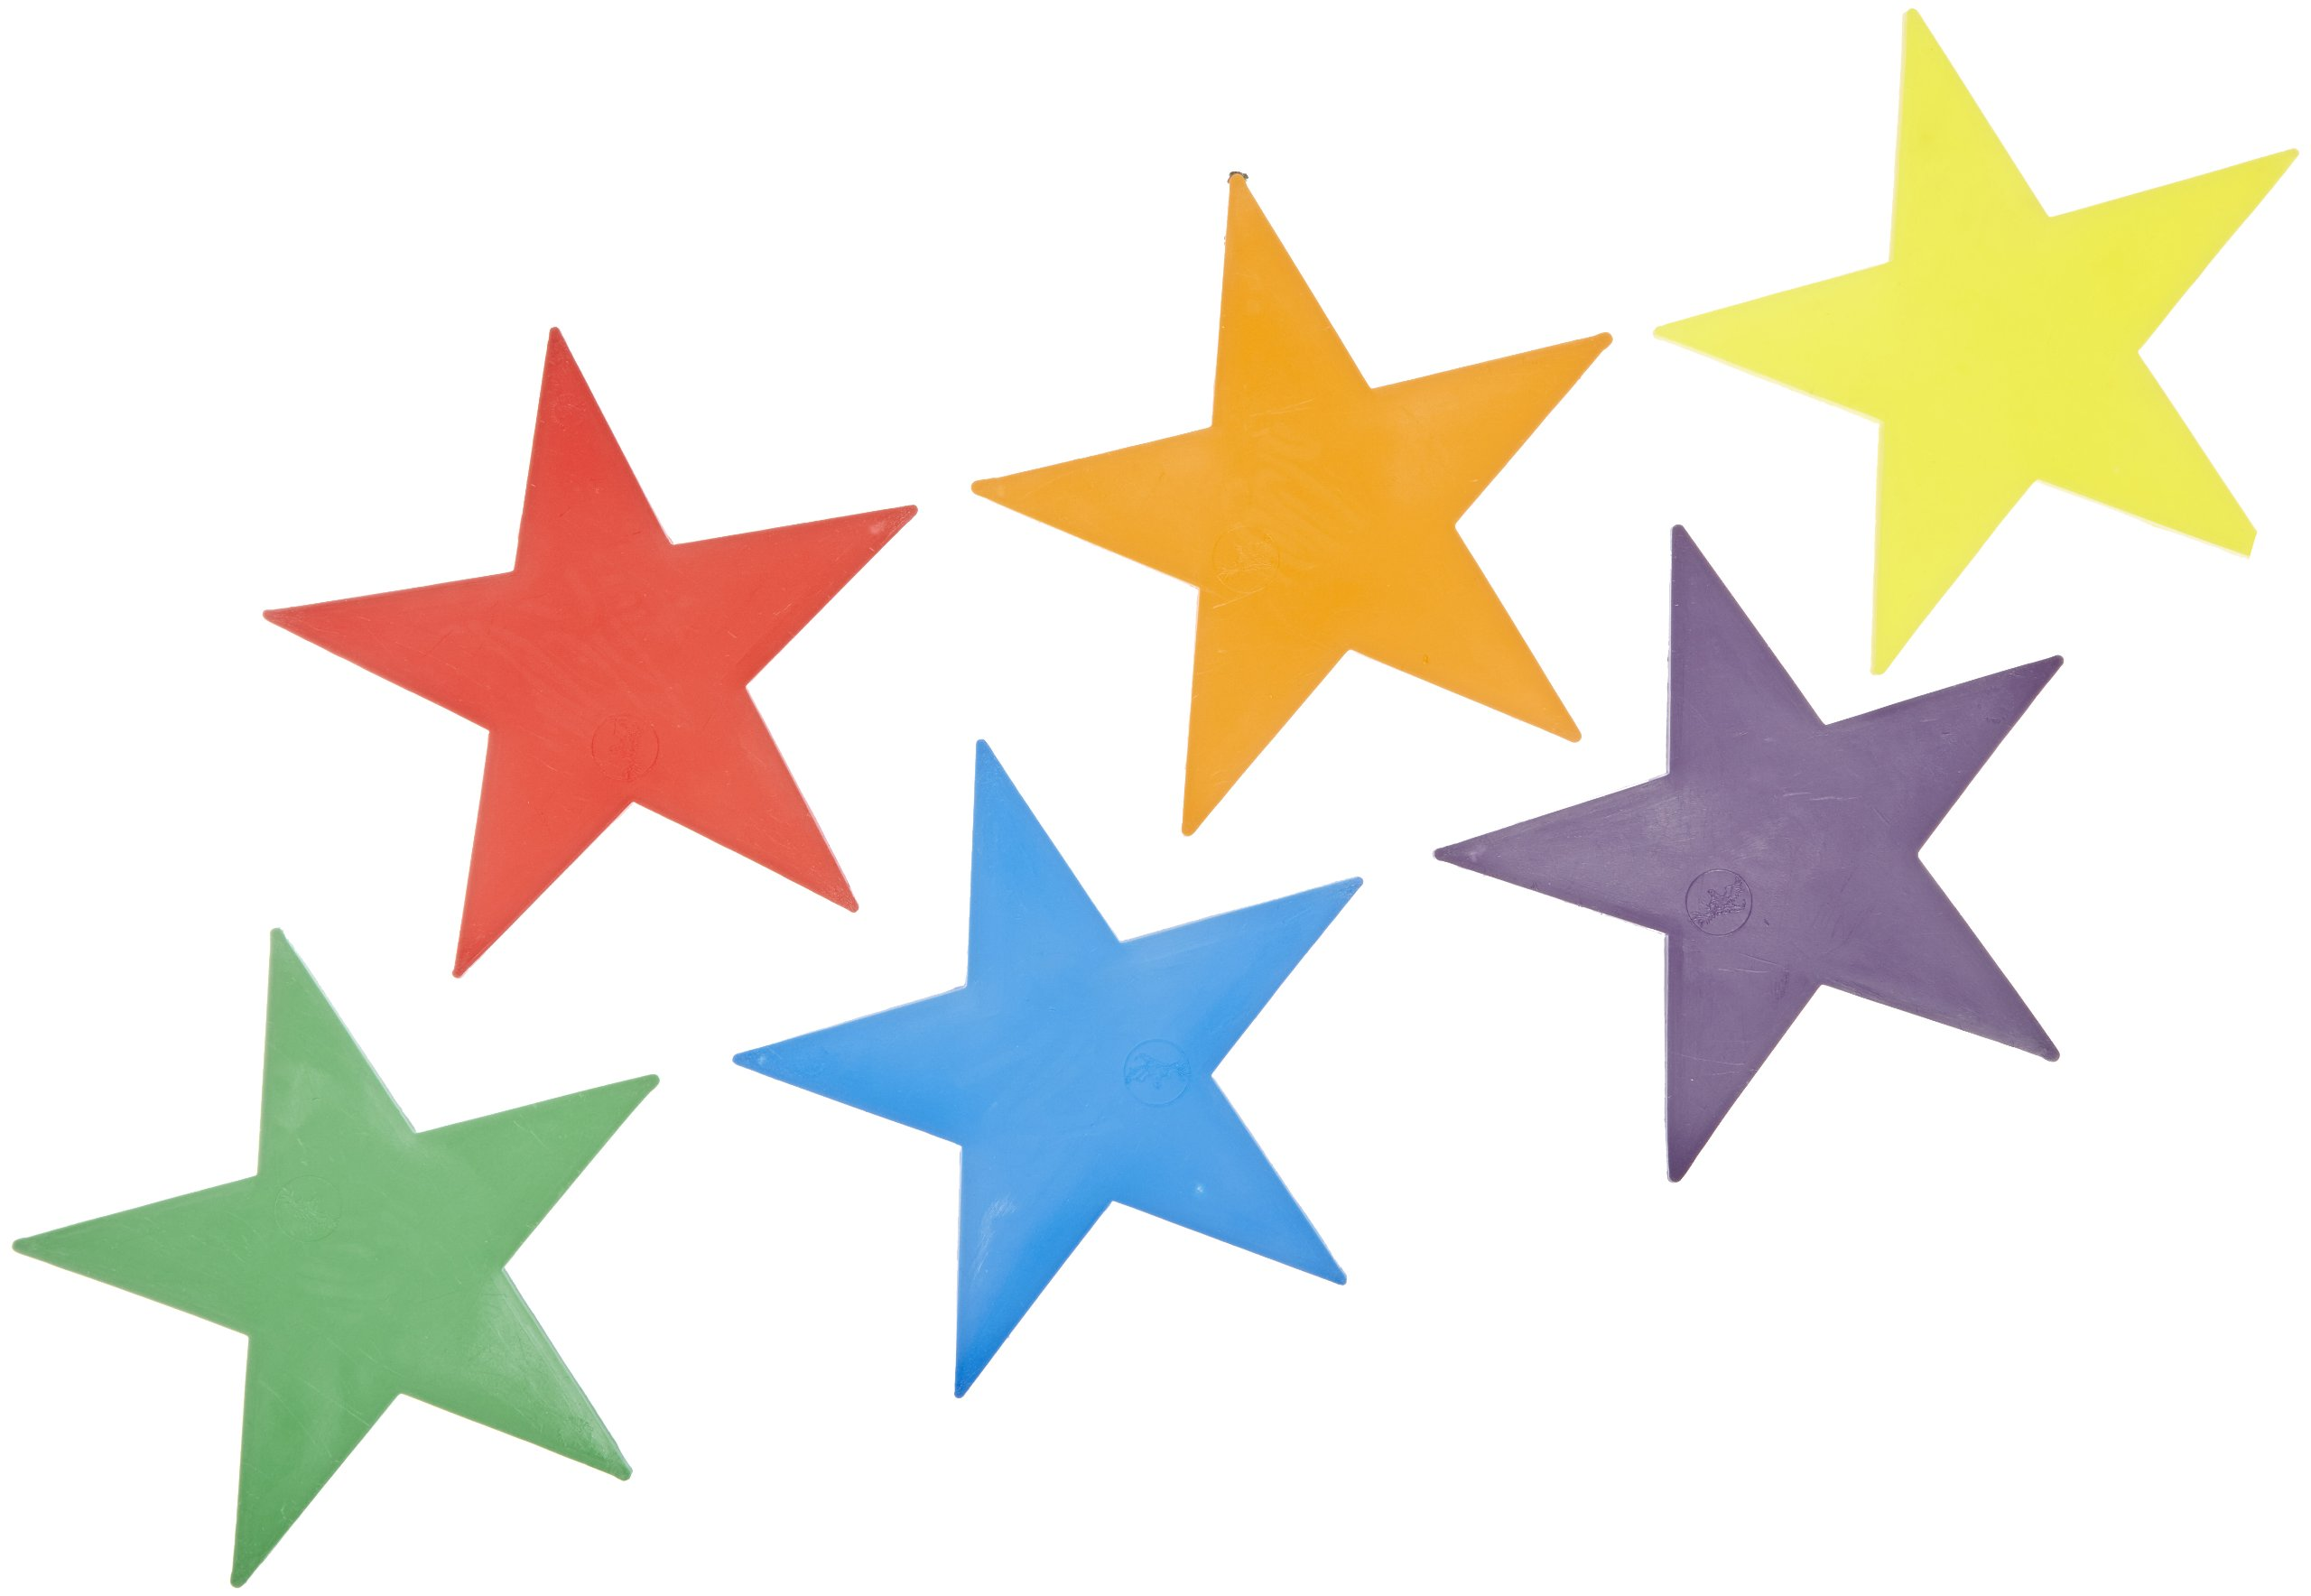 Poly Enterprises Vinyl Poly Star, Assorted Colors, 10'' x 10'' x 3/16'' Thick (Pack of 6)